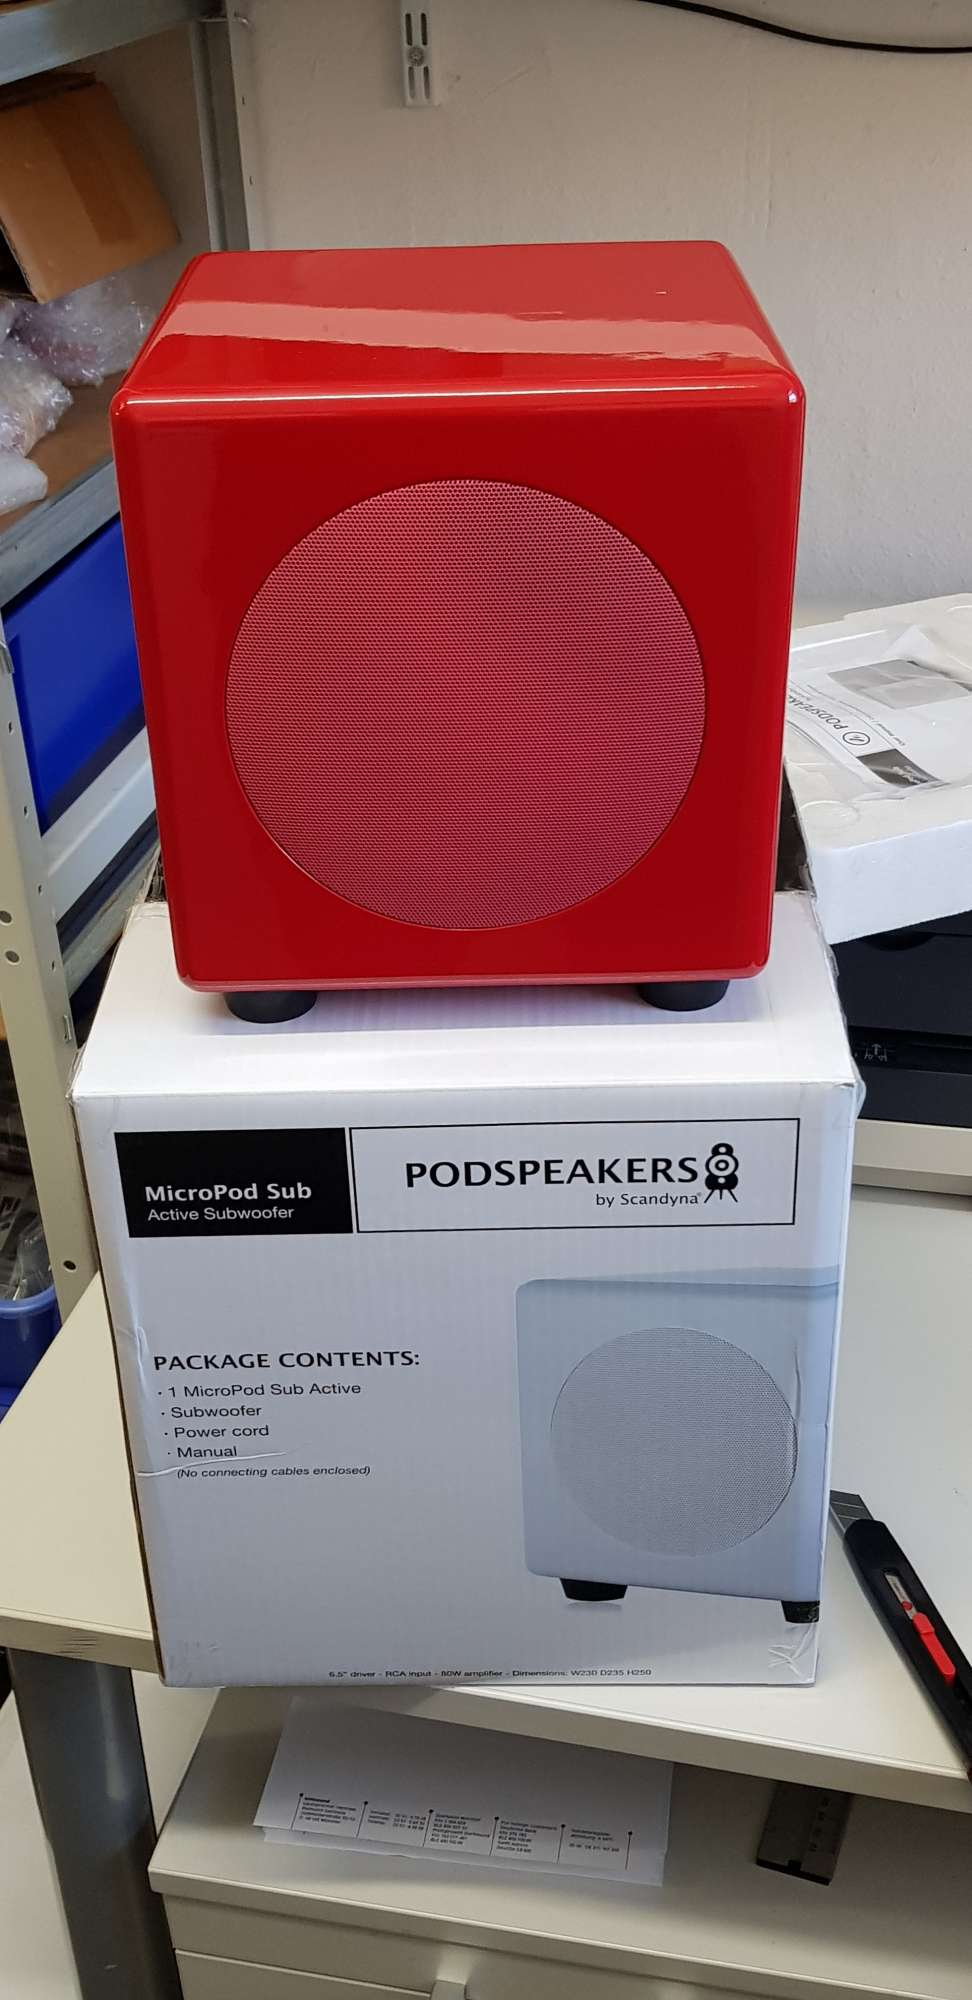 Scandyna Podspeakers Micropod Subwoofer (Demo, little failure in laquer)